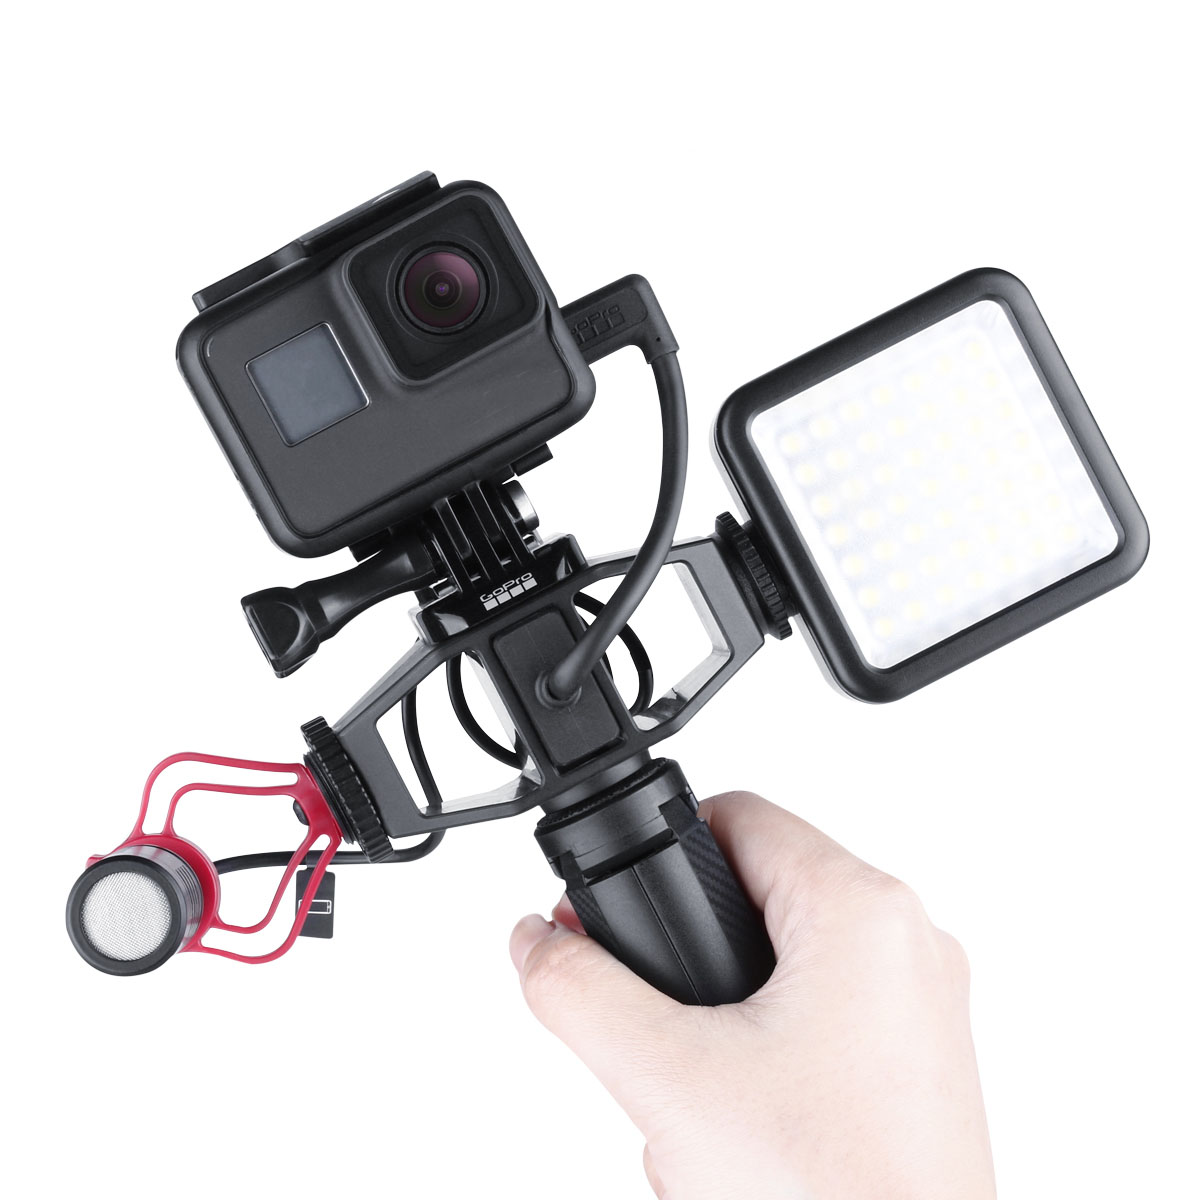 2 Cold Shoes Mounting Mic Bracket Adapter Holder With 1//4 Screw for GoPro Vlog